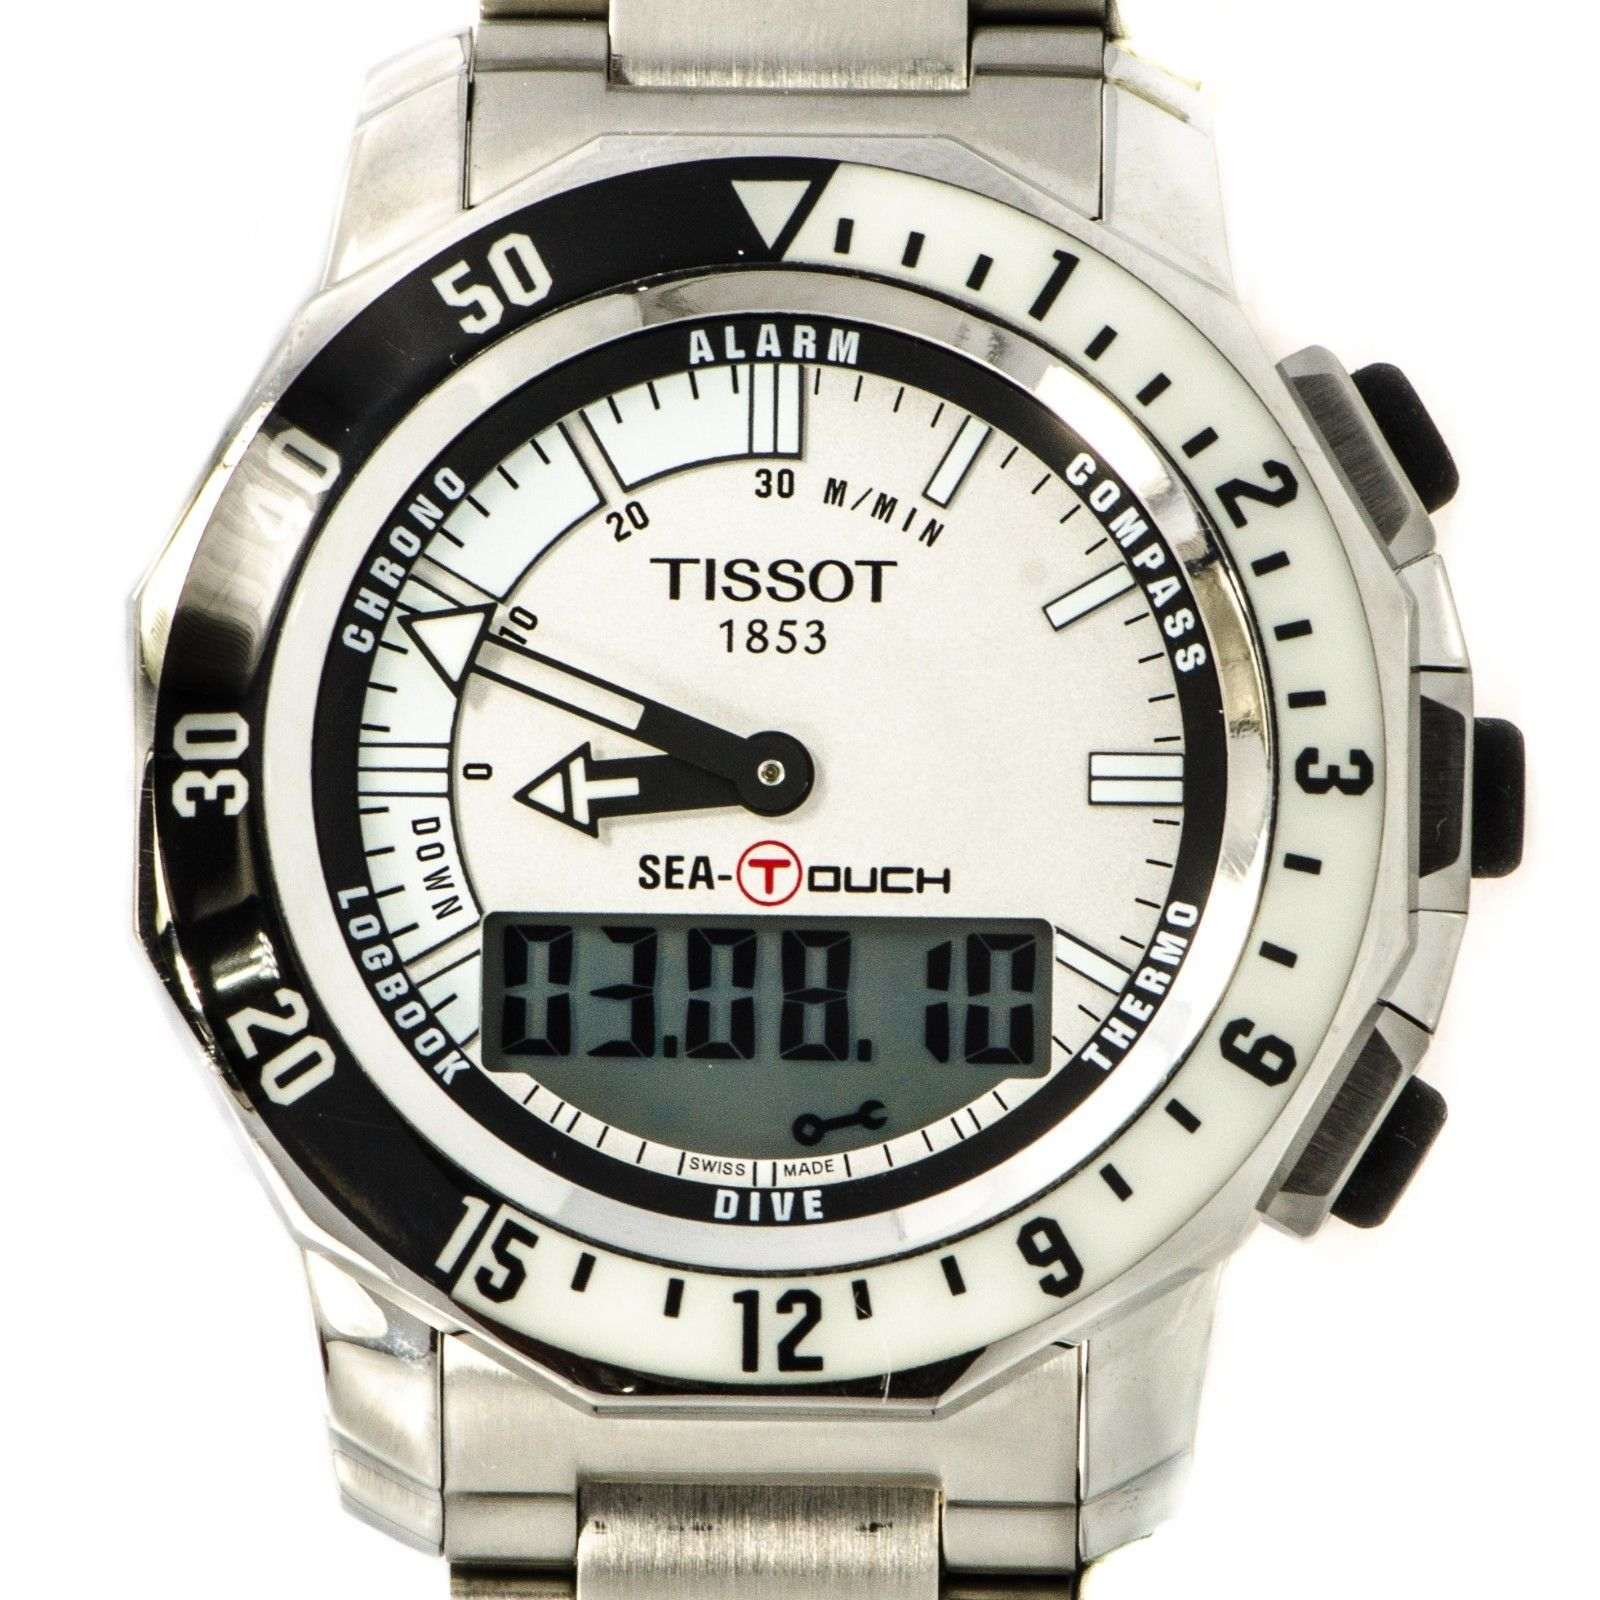 "Image of ""Tissot T026420A Stainless Steel White Dial Alarm Compass Digital Men's"""